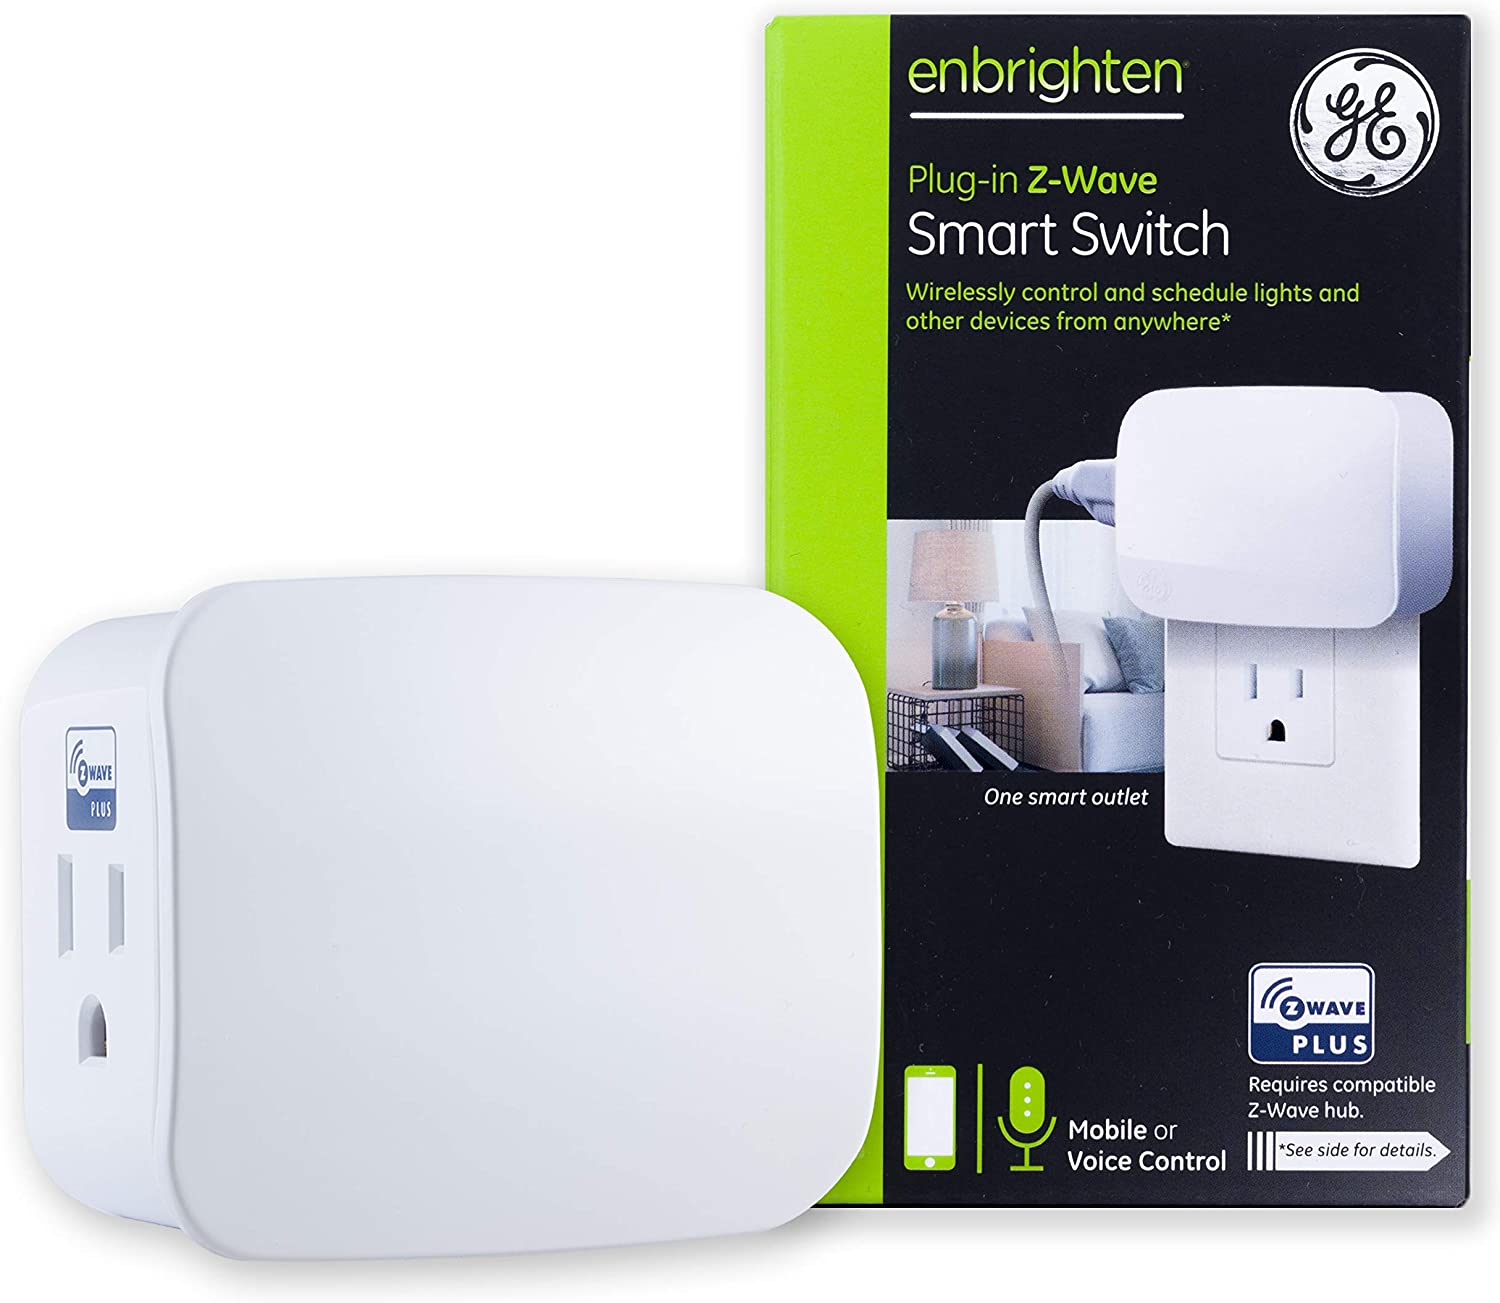 GE Enbrighten Z-Wave Plus Smart Switch On/Off 1-Outlet Plug-In Module - 28169